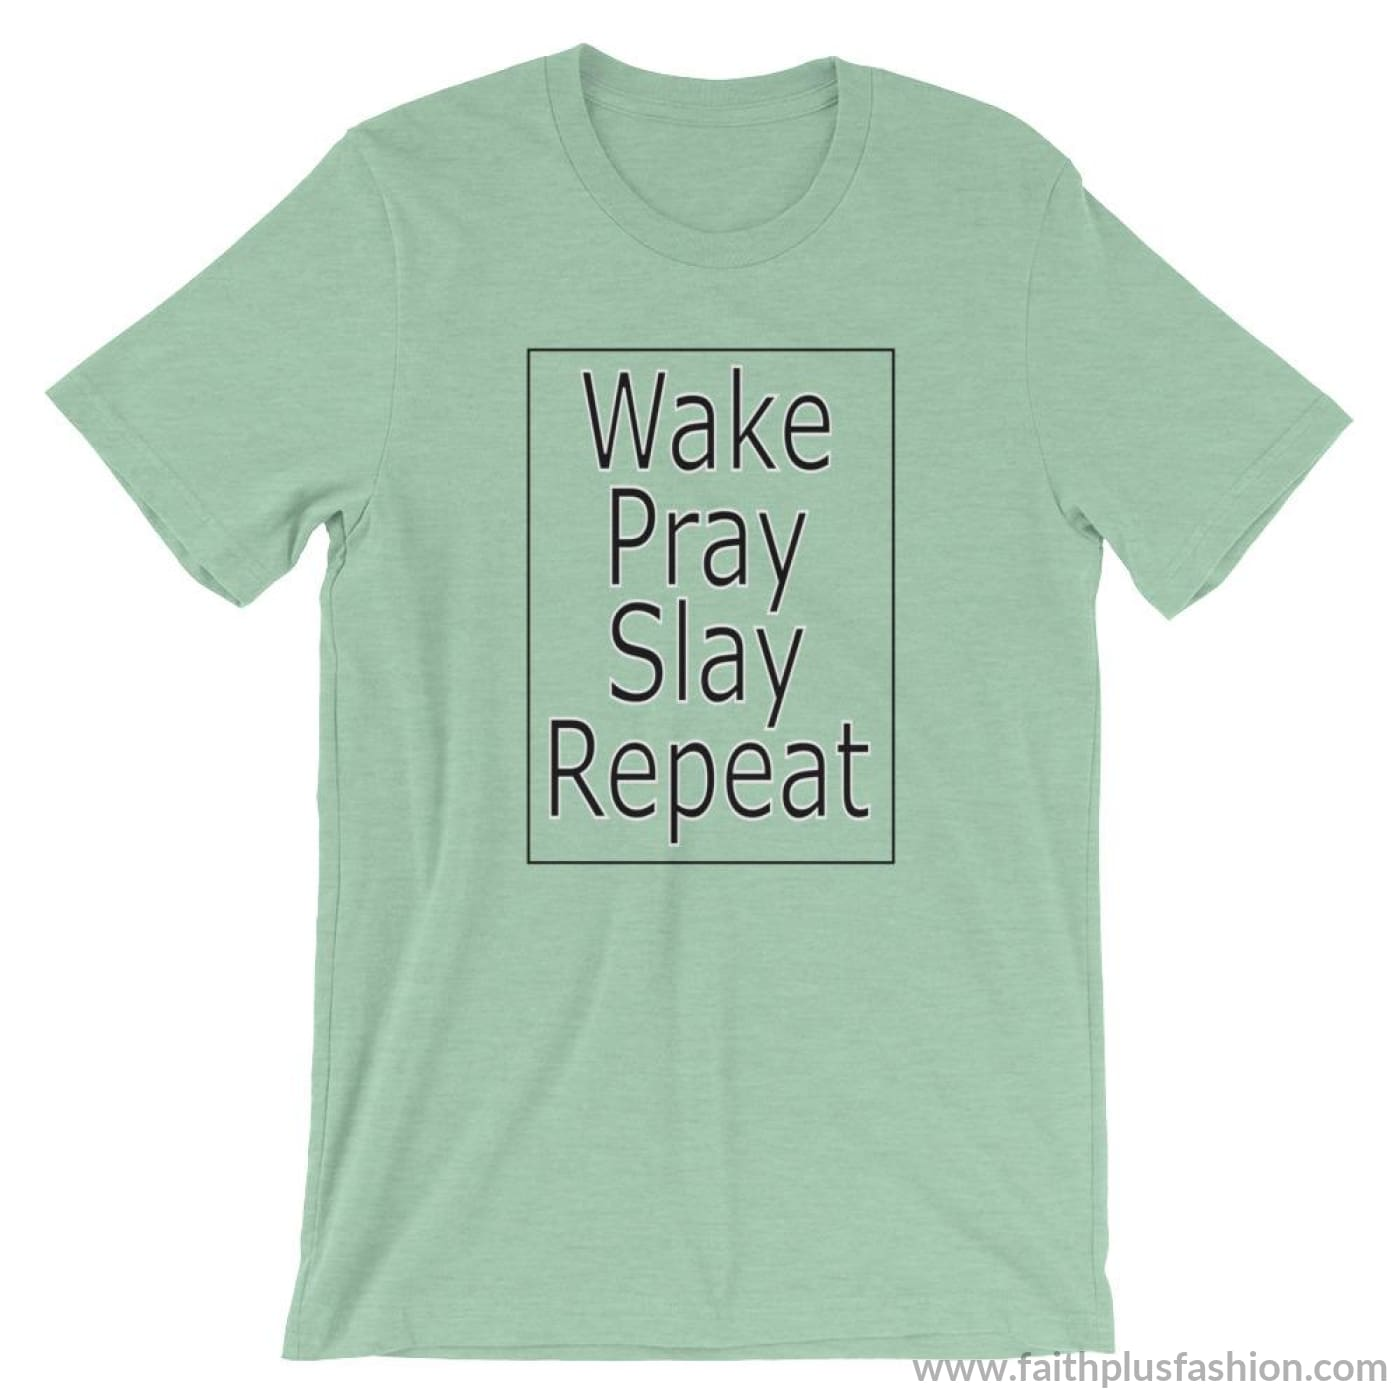 Wake Pray Slay Repeat Unisex T-Shirt - Heather Prism Mint / S